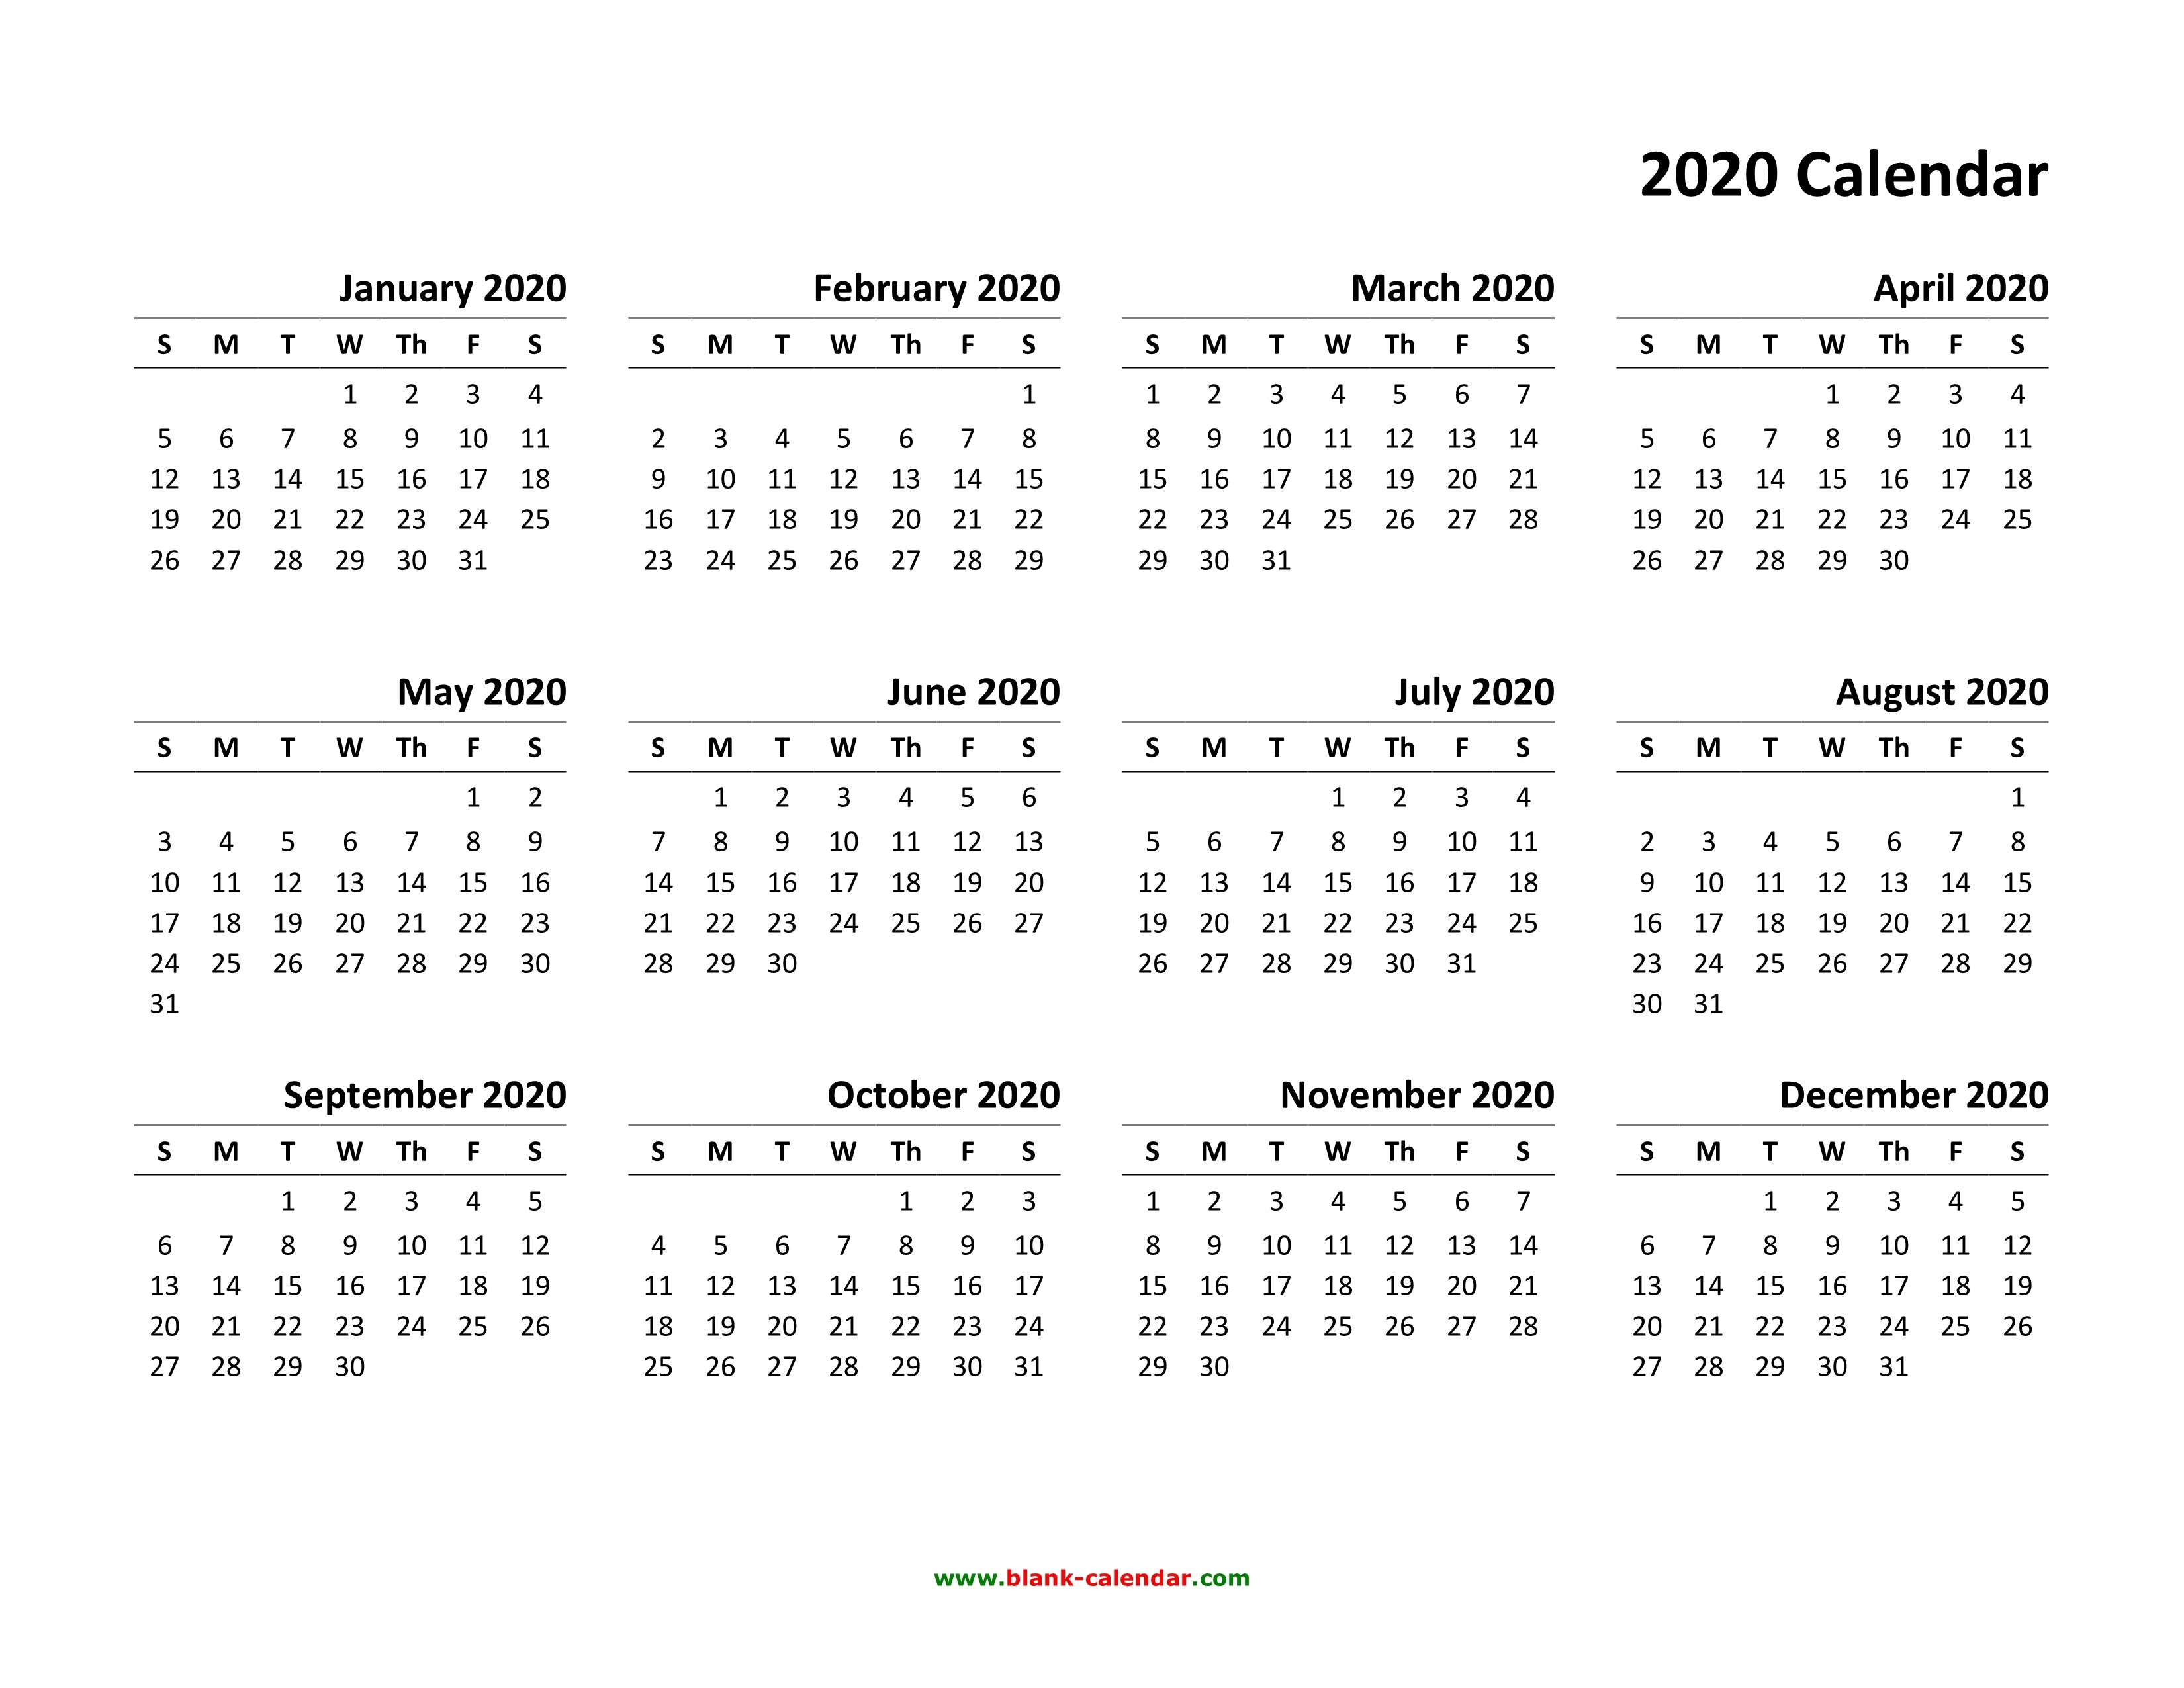 Yearly Calendar 2020 | Free Download And Print-Blank W 9 2020